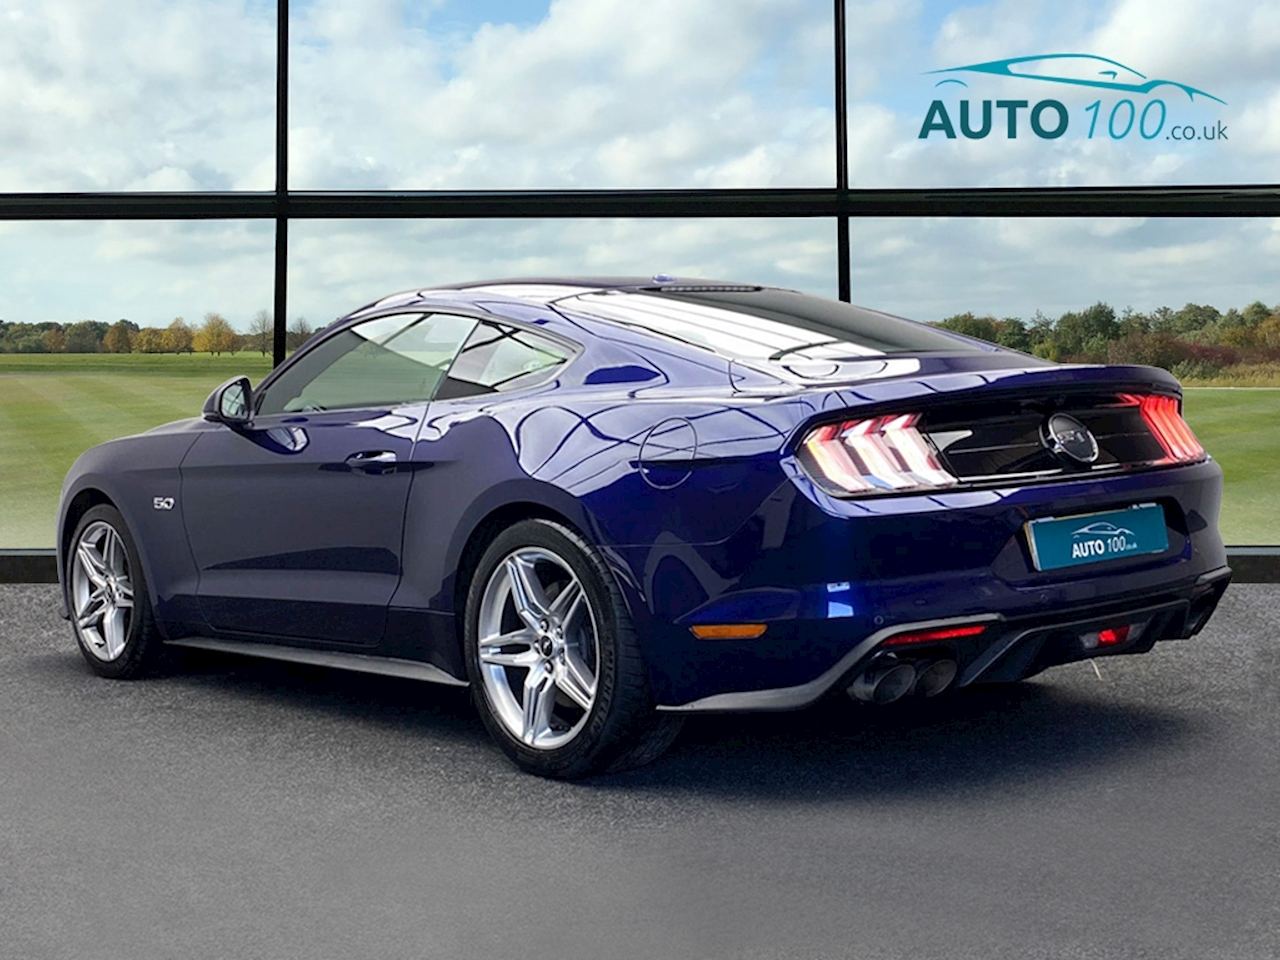 Ford Mustang GT Fastback 5.0 Manual Petrol